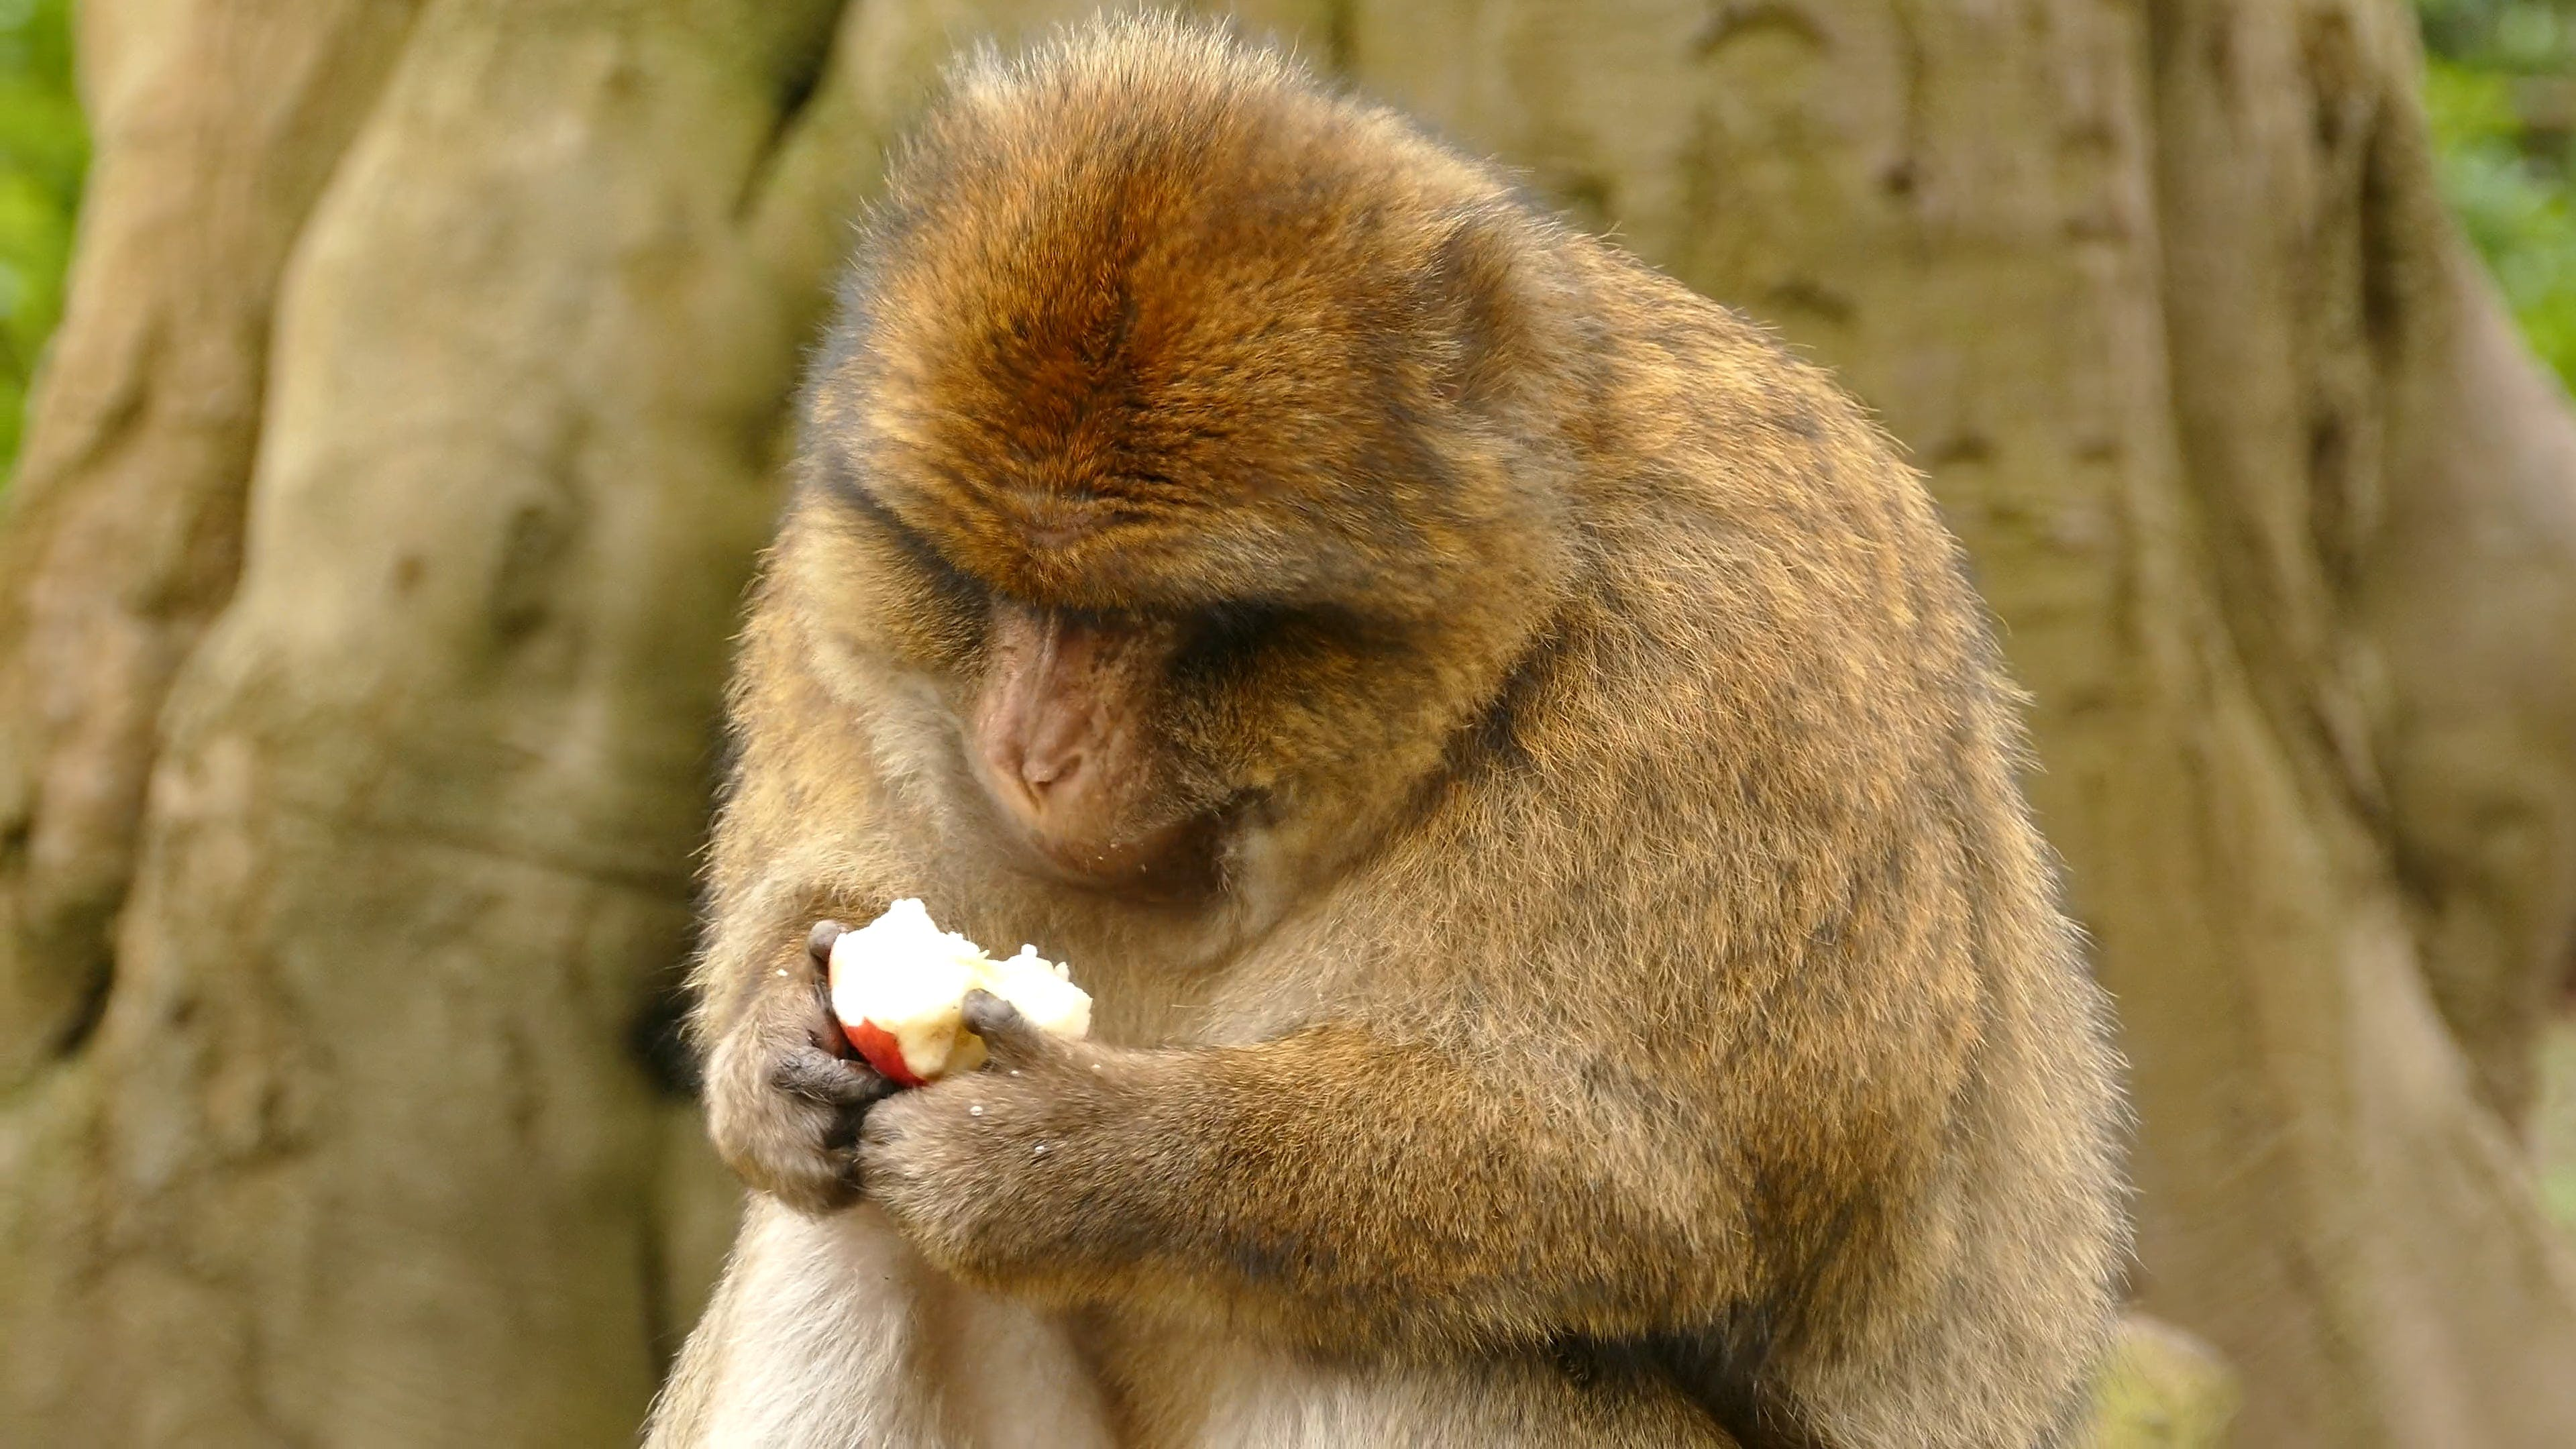 Monkey Eating